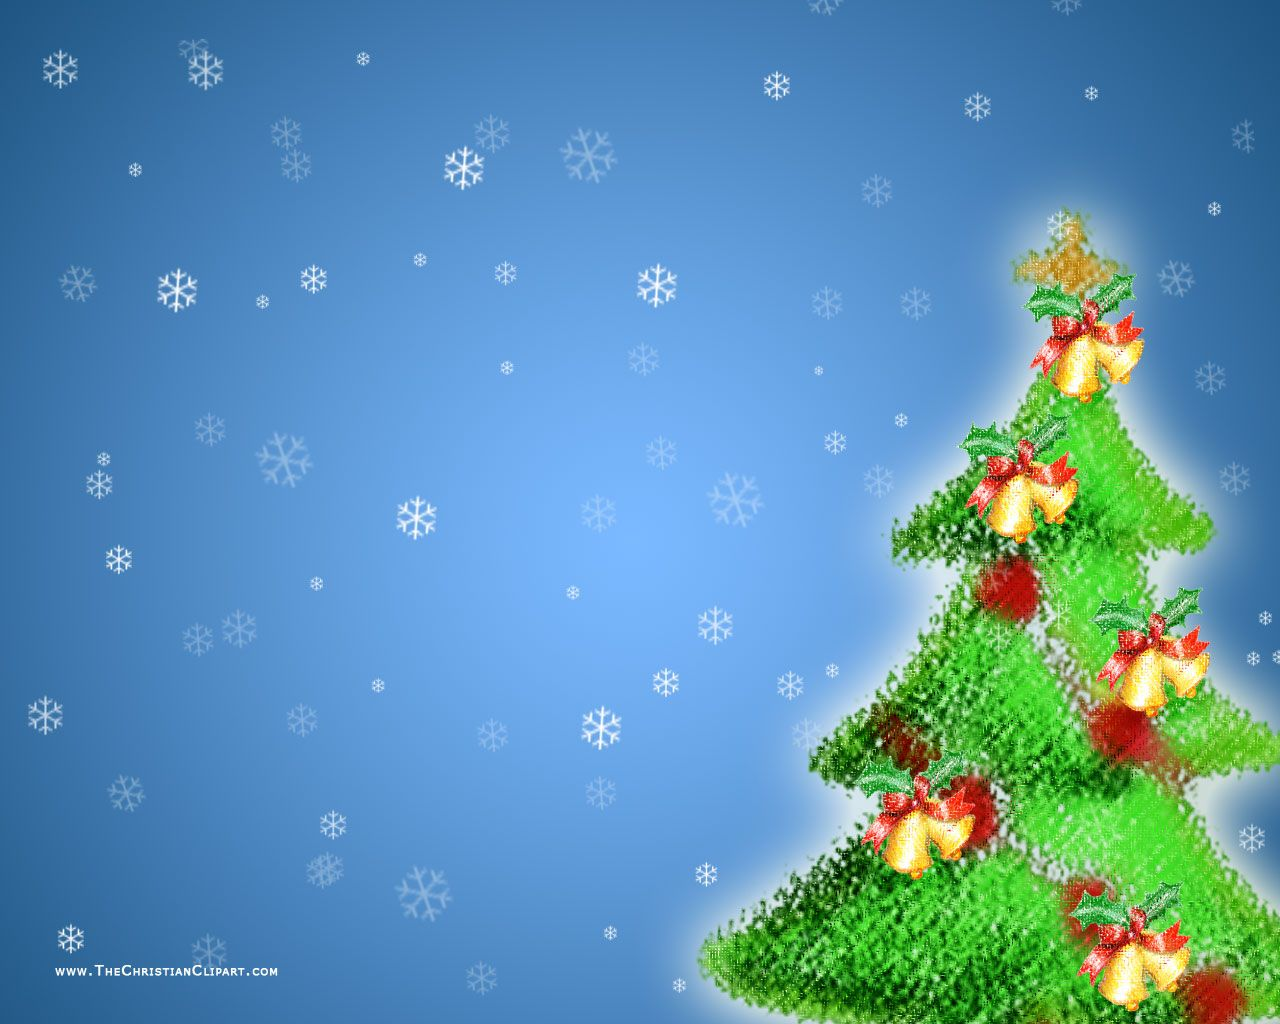 Christmas background Fondo de pantalla navidad, Planta